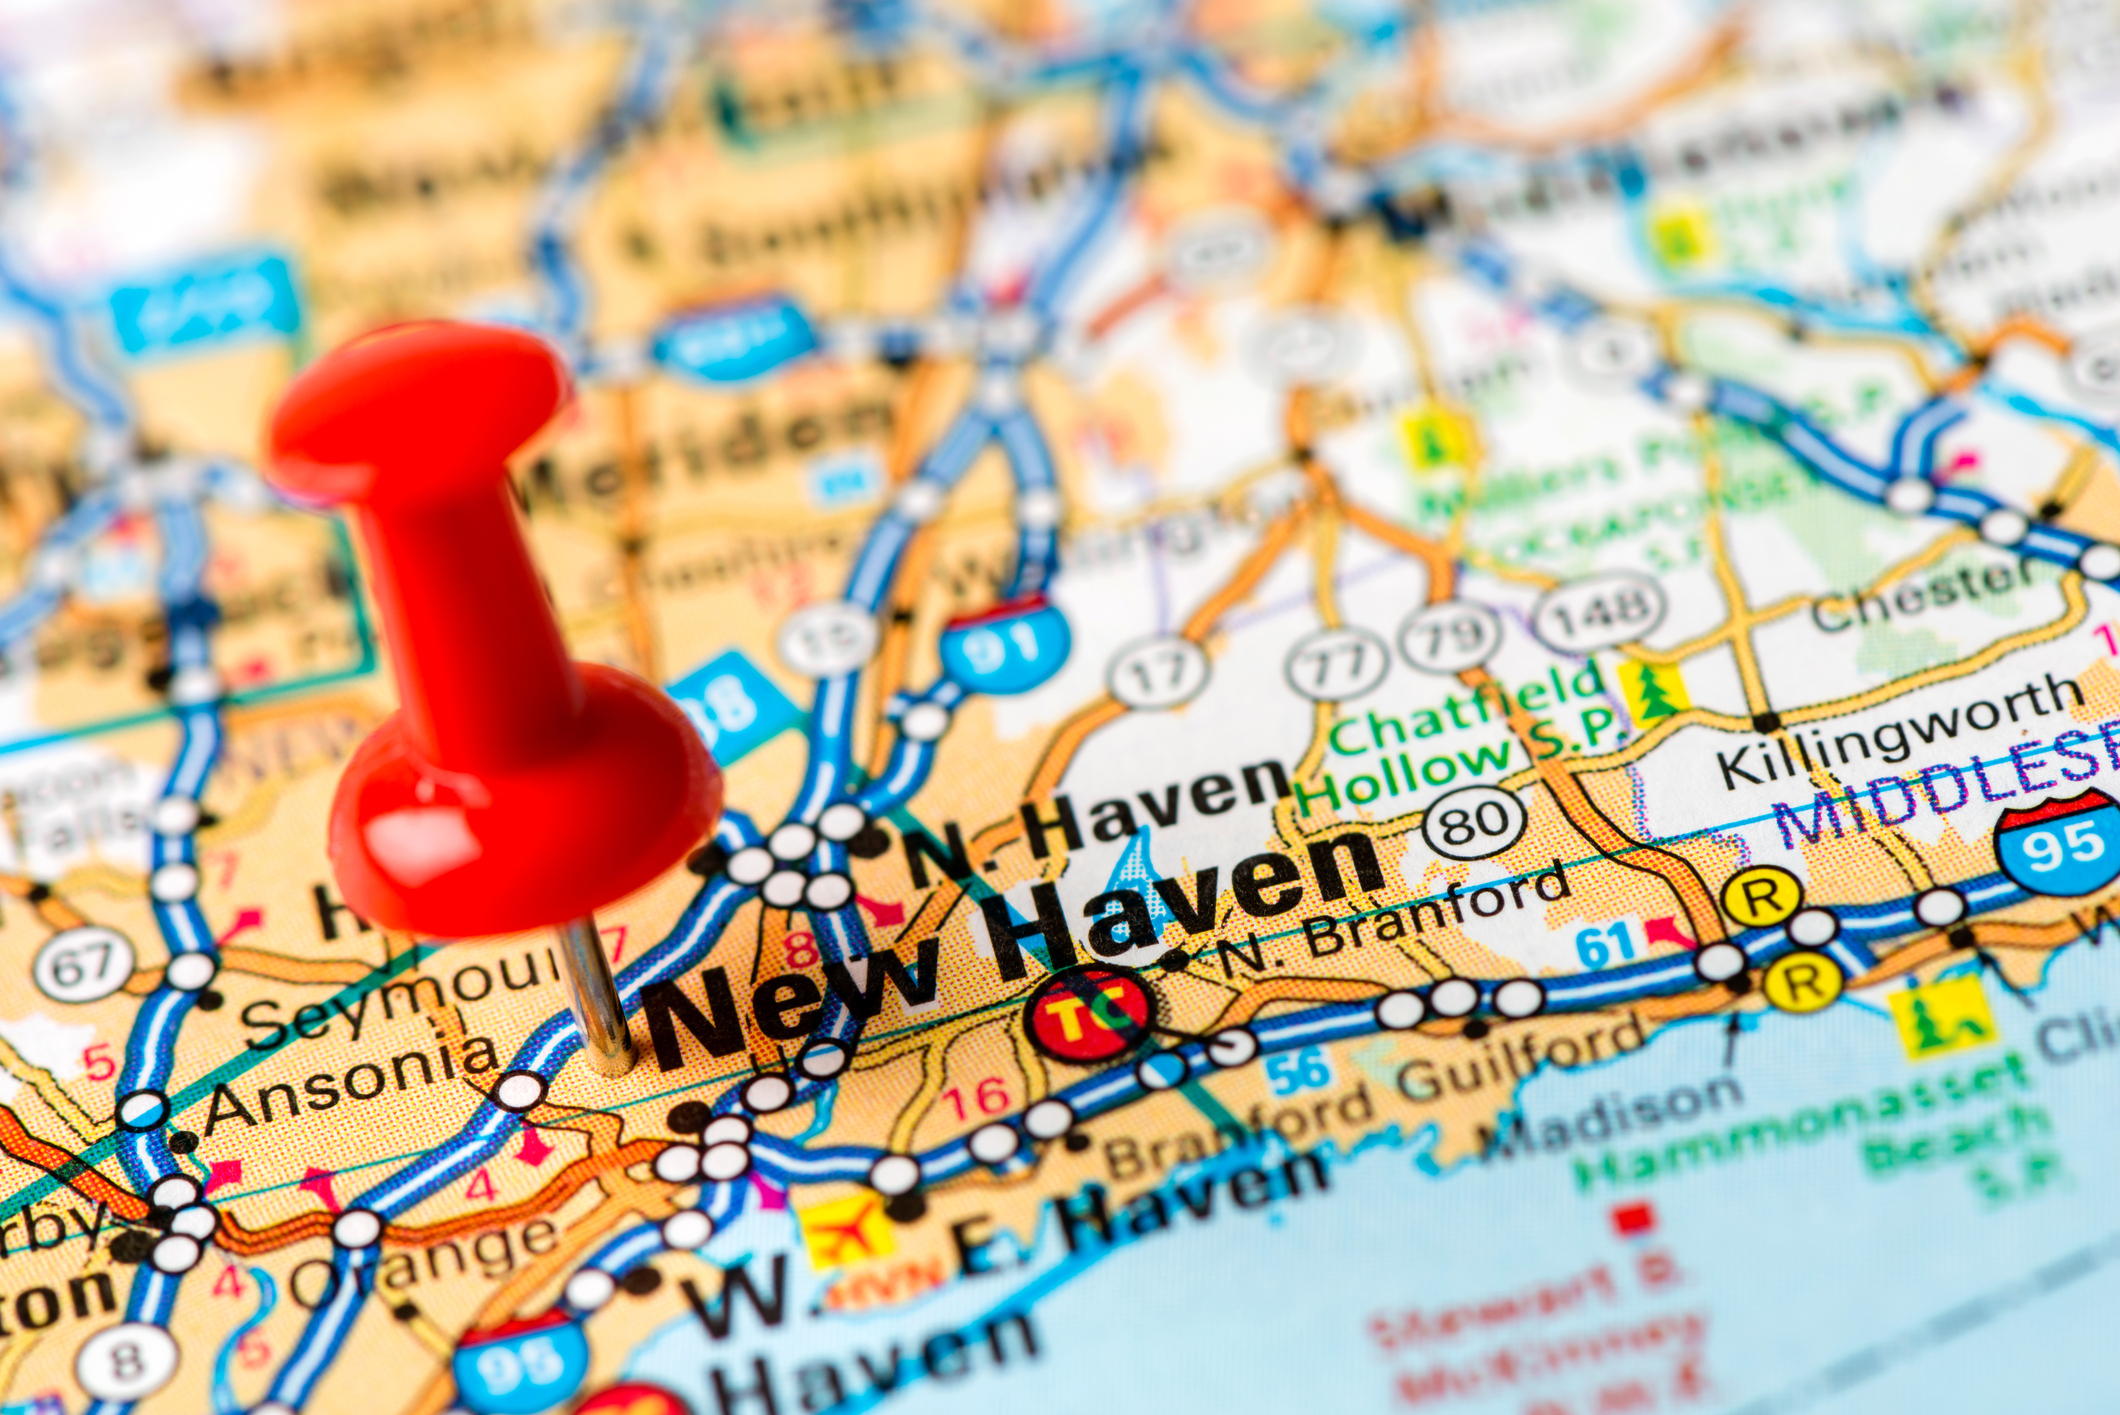 New Haven on map